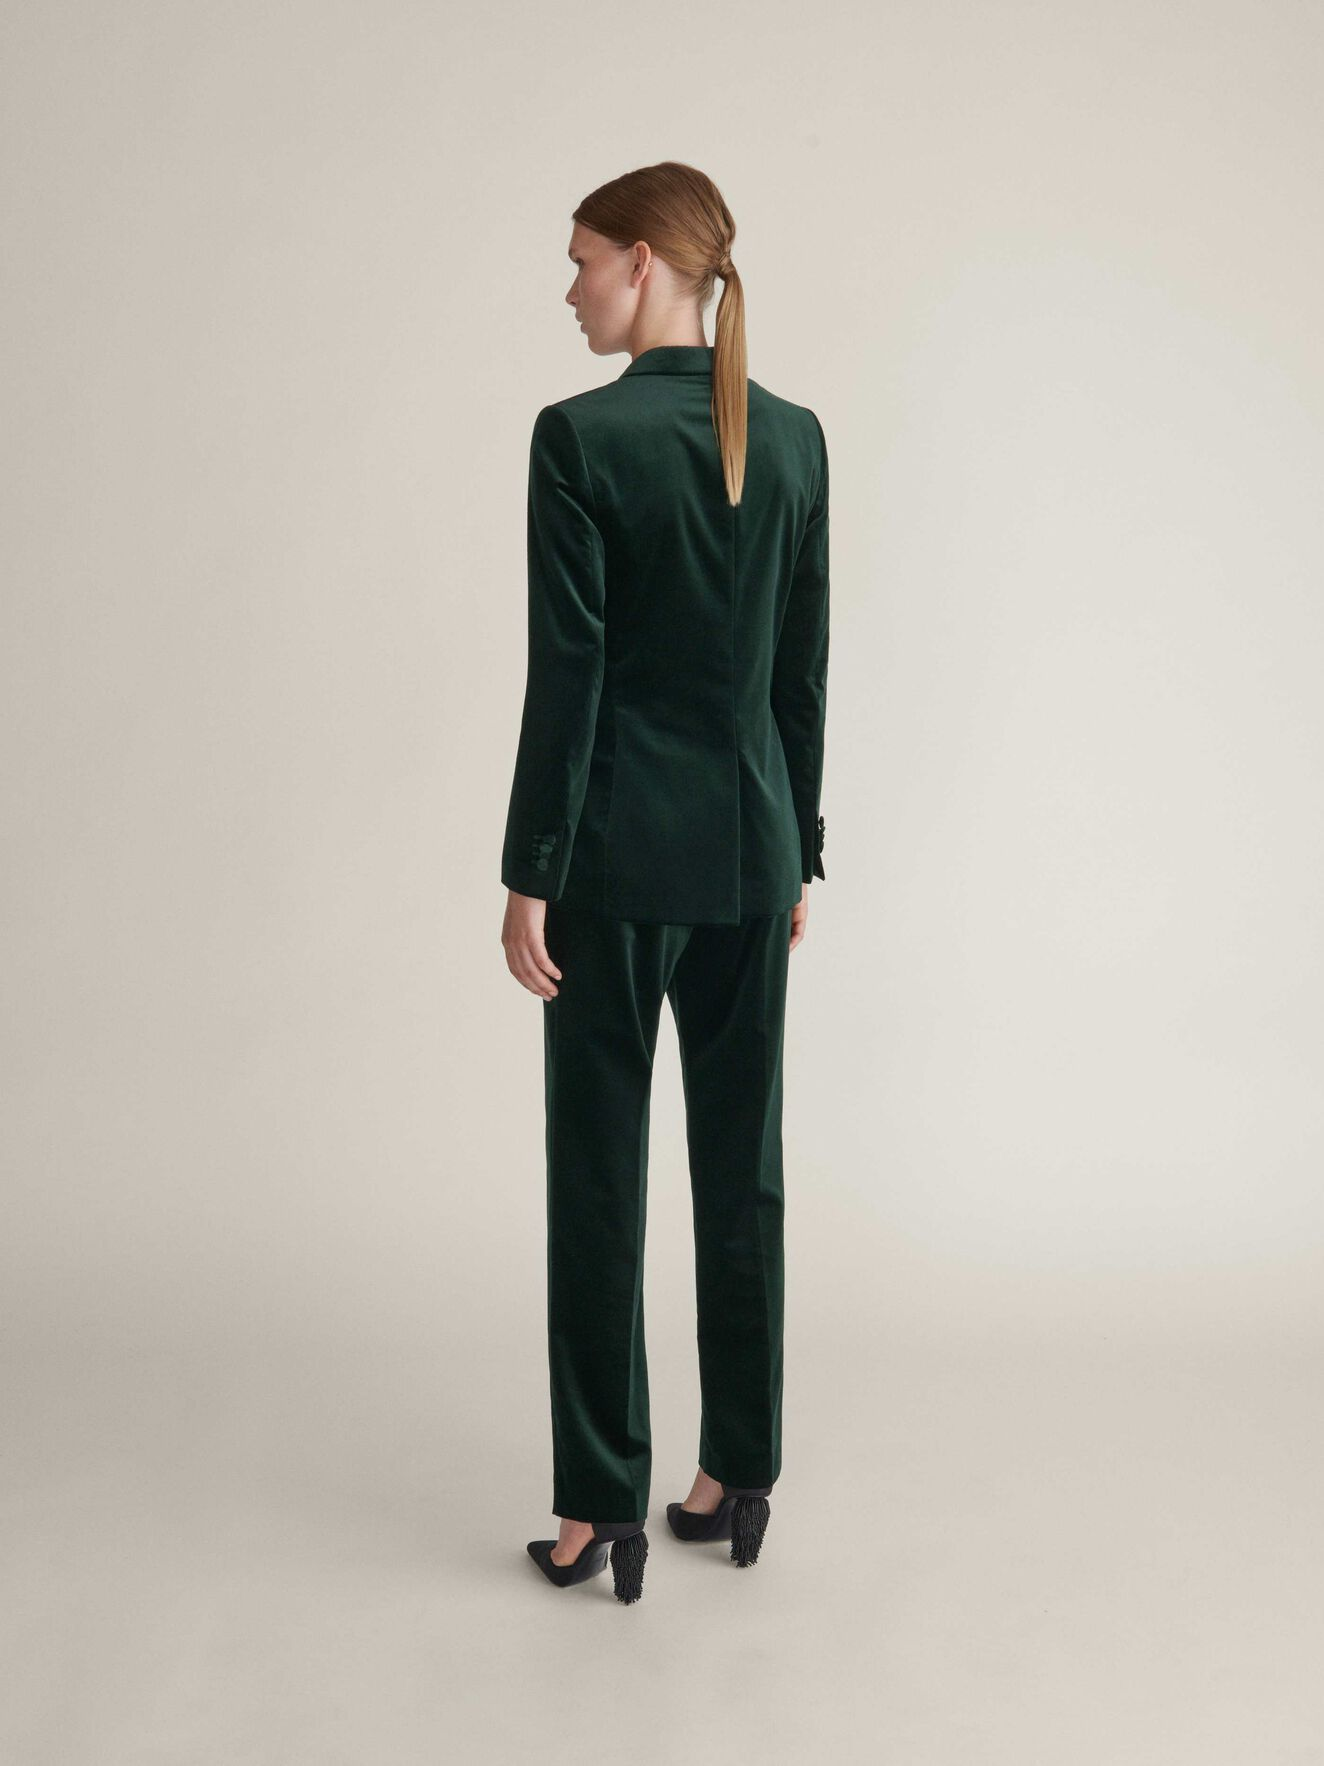 Seanessa 2 Trousers in Dark Forest from Tiger of Sweden